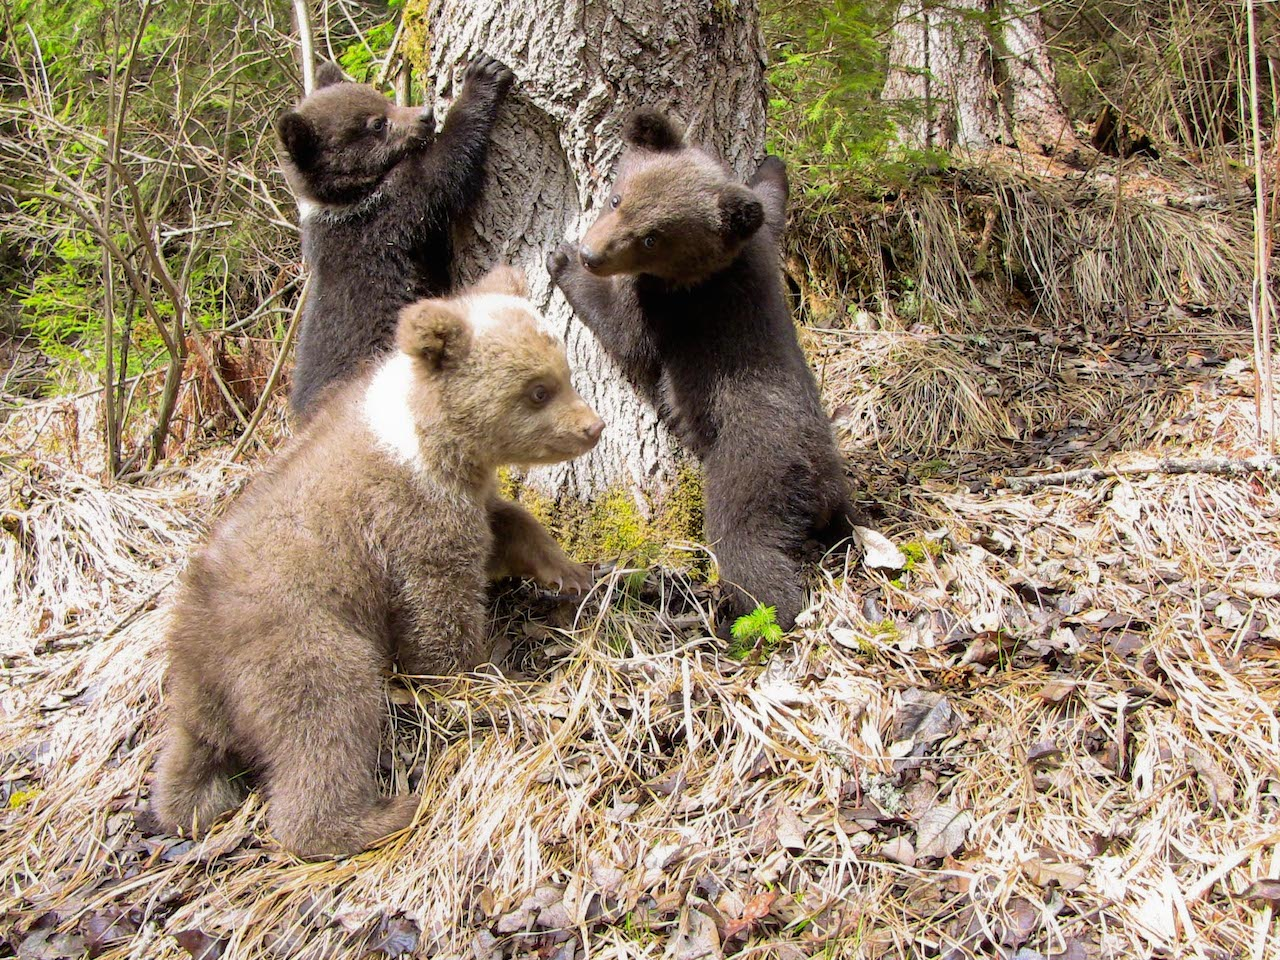 Bear Orphan Station Harghita | Romania | 2013 | Brown Bear Cubs 2013 | Boogster light coloured bear cub | dark coloured bear cubs have no names